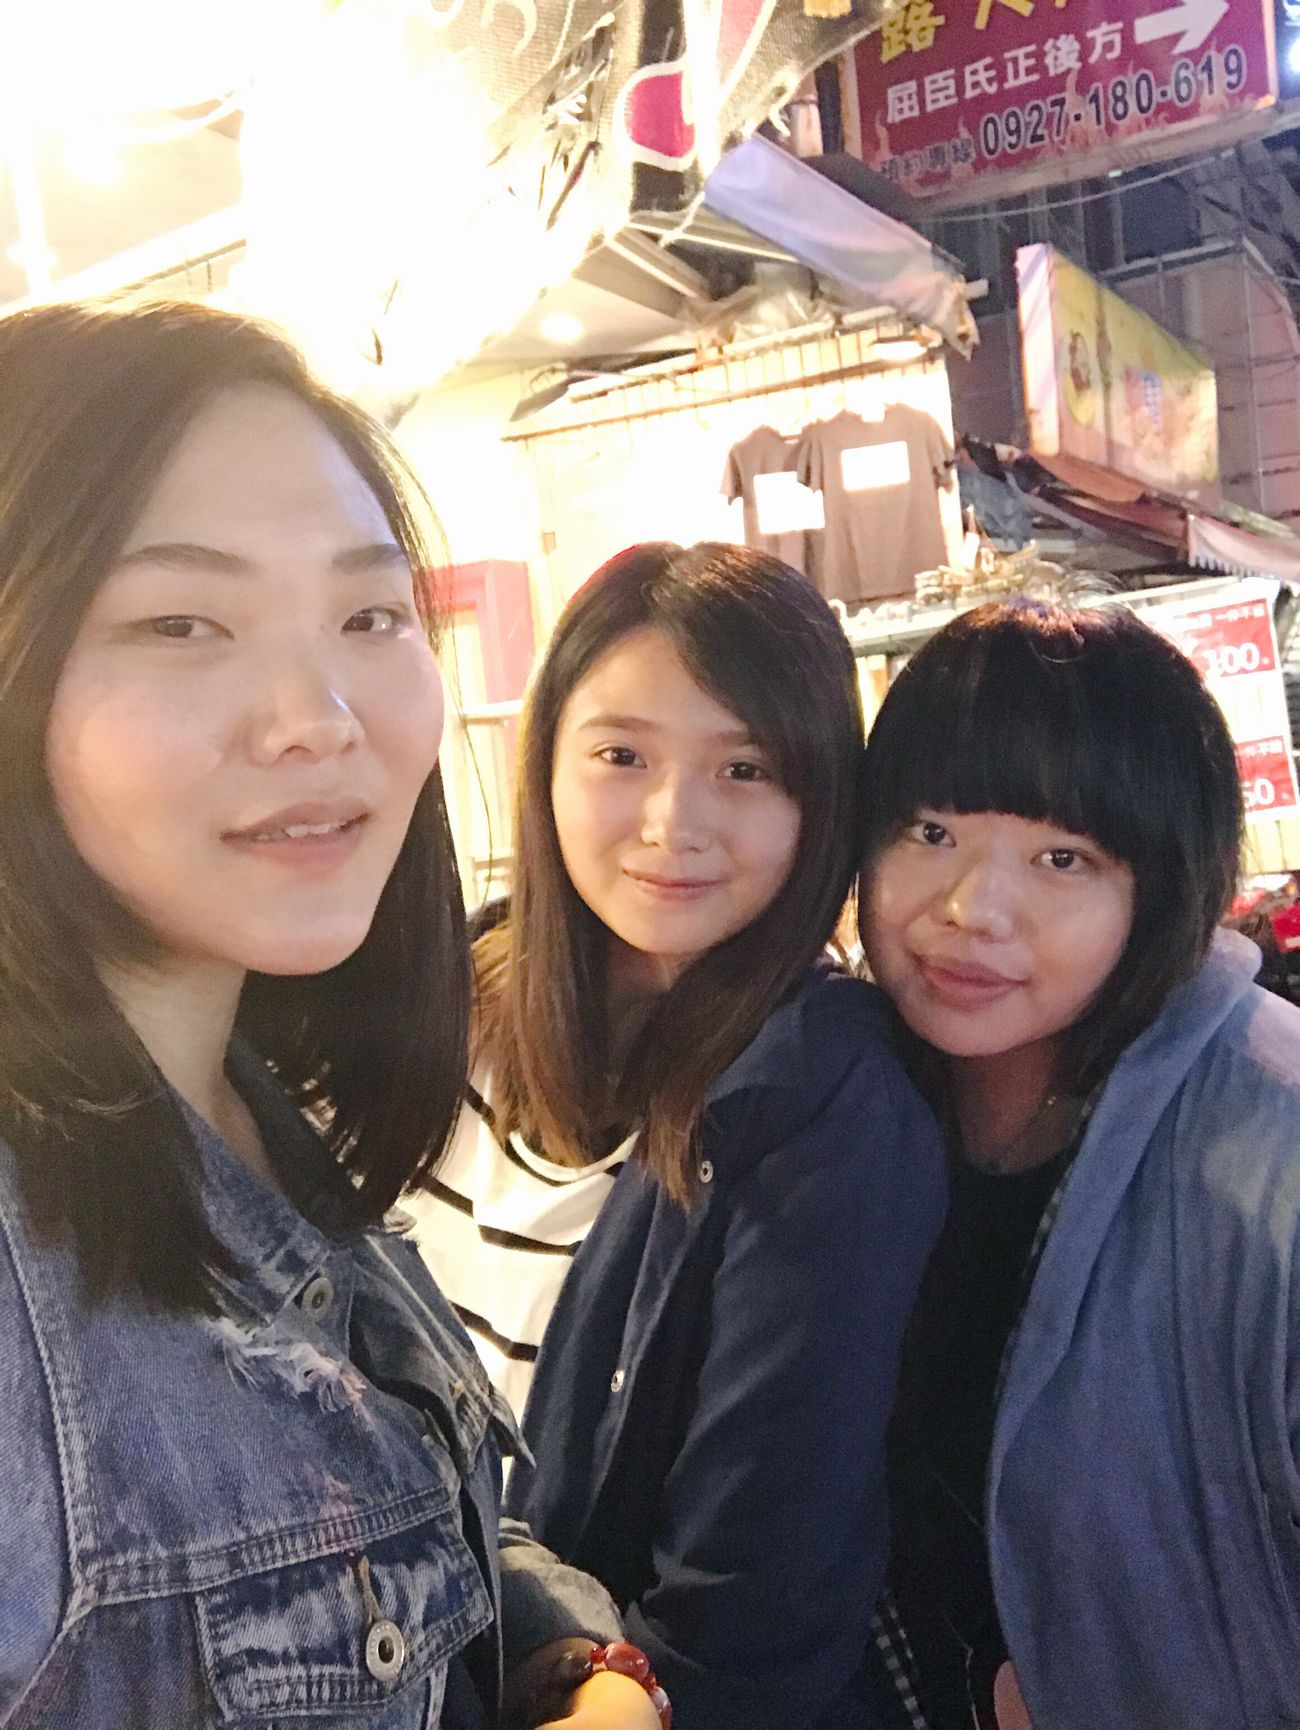 20161030 Happiness Outdoors Nightmarket Hanging Out Women Beauty Enjoying Life Photography Vscocam EyeEm Taiwan VSCO Yolo Kate's Daily Relaxing Friendship Hello World